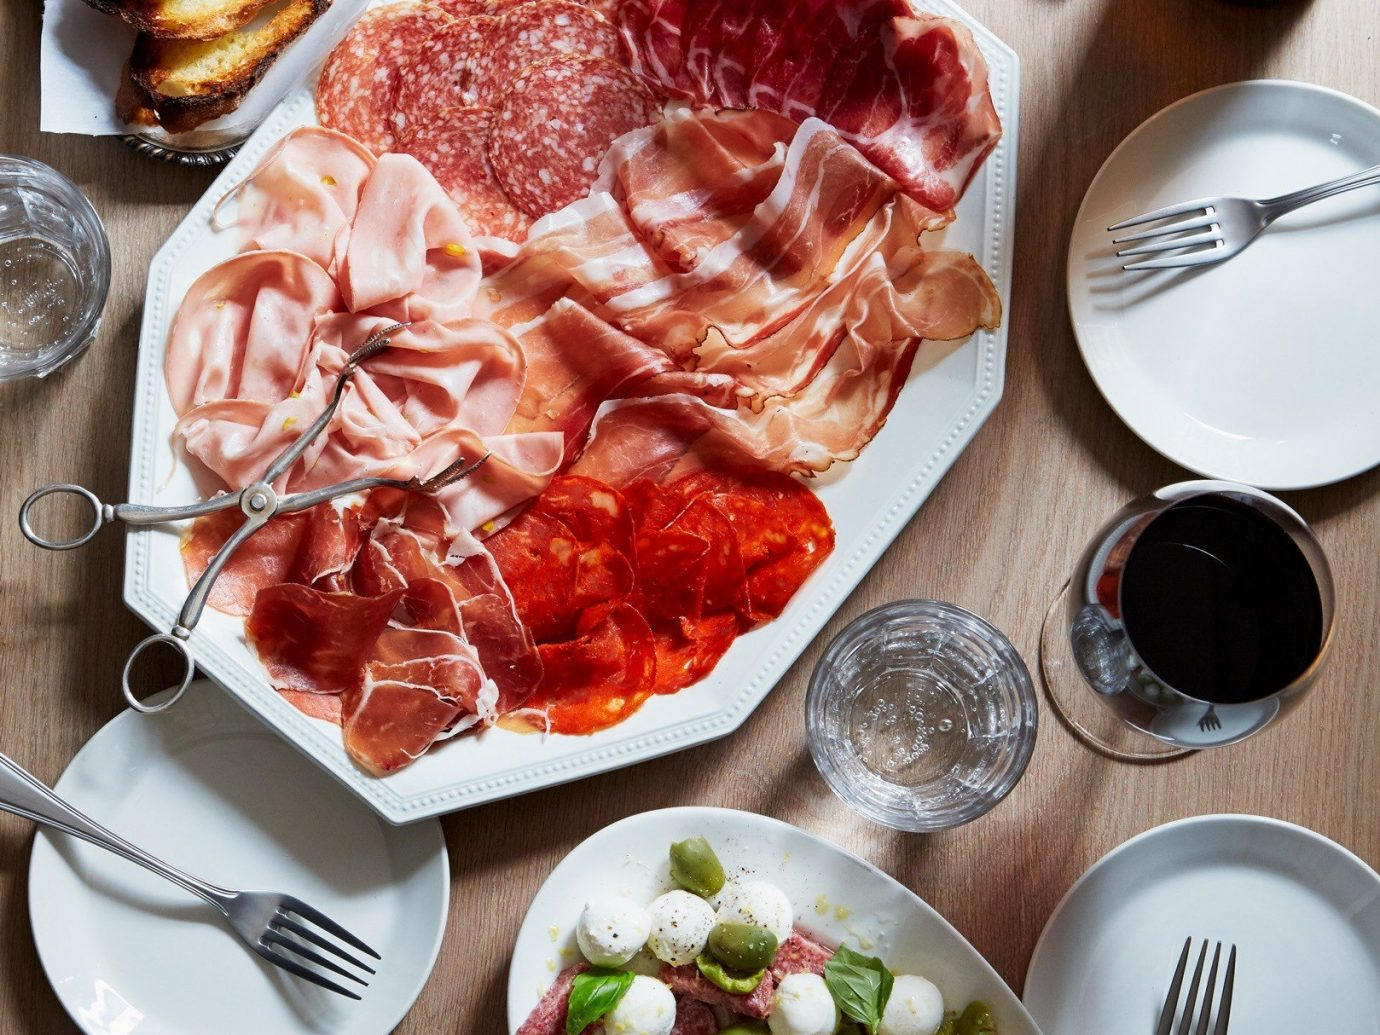 Food + Drink food plate table dish meal breakfast lunch brunch meat produce full breakfast cuisine hors d oeuvre salt cured meat several